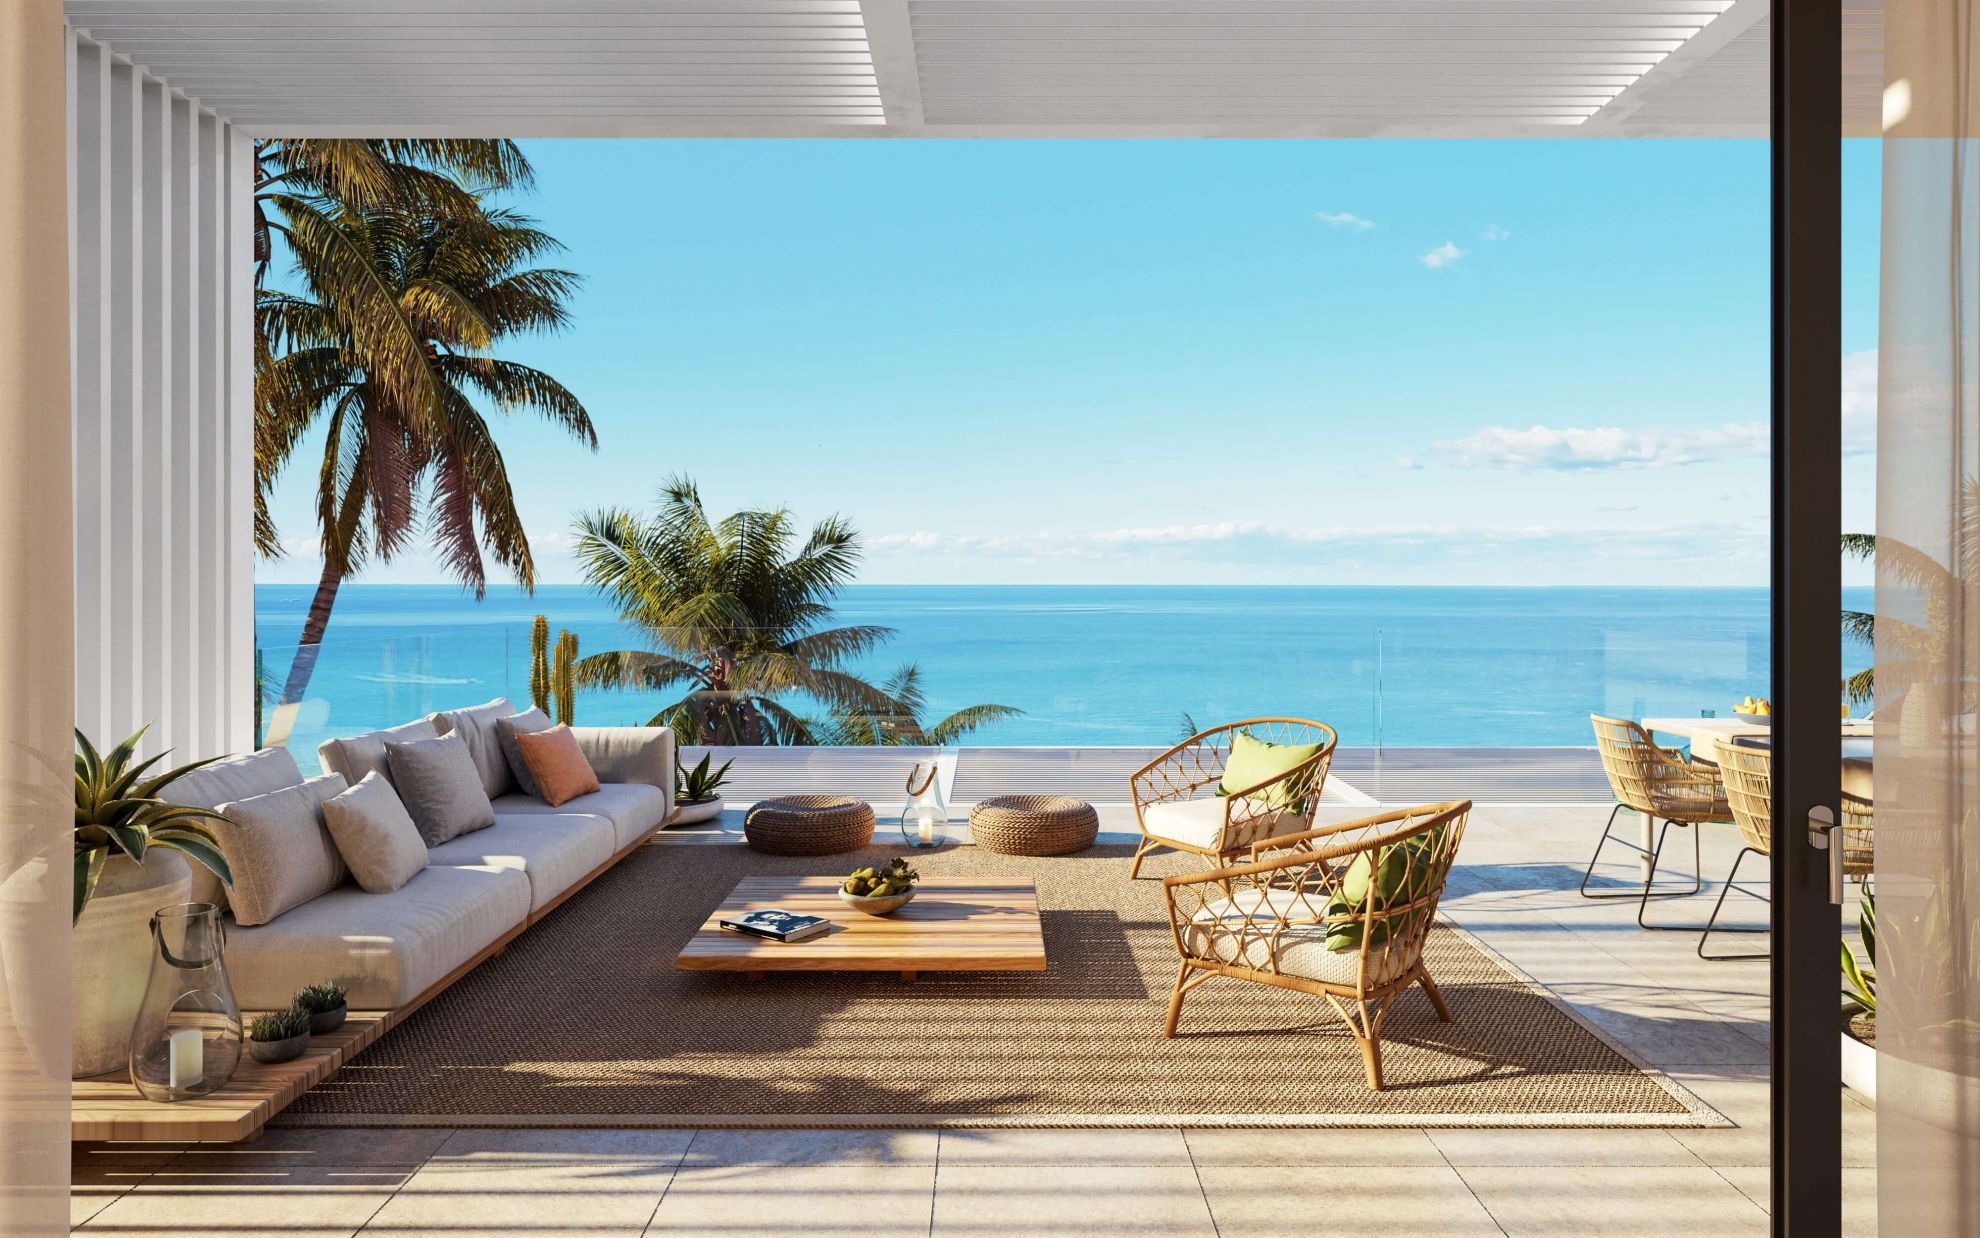 2 and 3 bedroom penthouse-style apartments with big terraces overlookg the sea. House 7 13